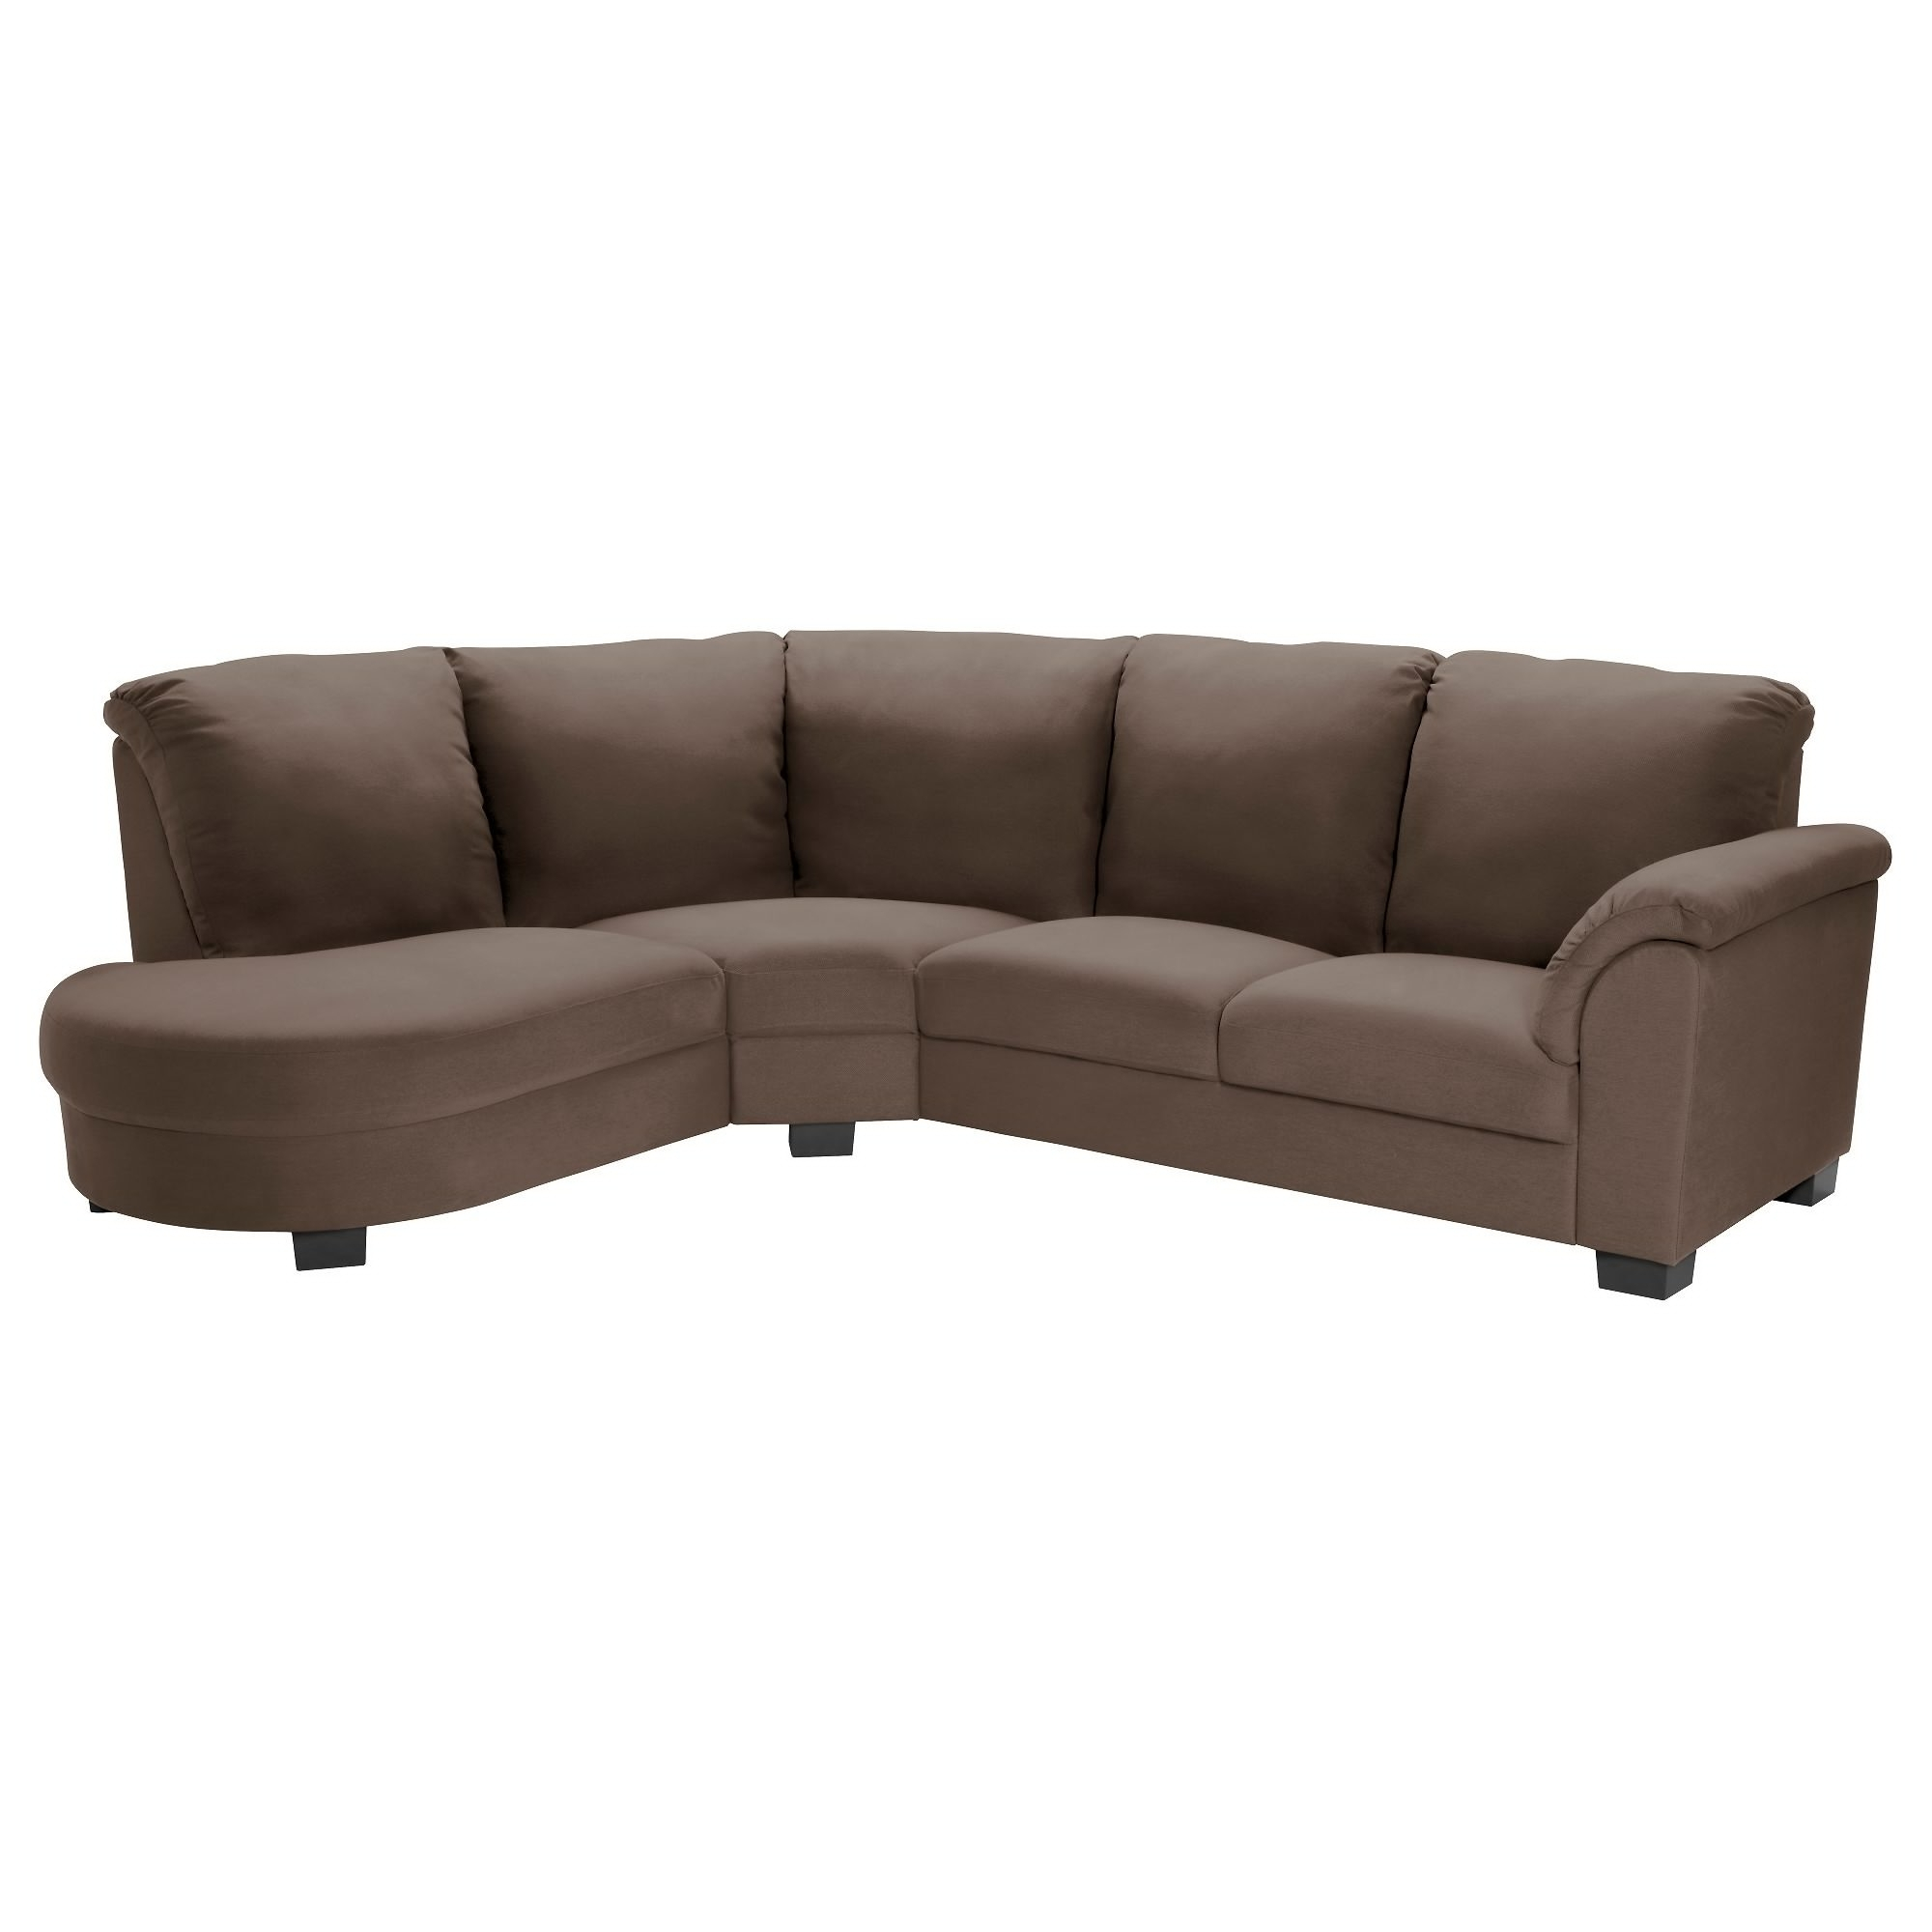 Latest Sectional Sofa Design: Corner Sectional Sofa Slipcovers Lamps Pertaining To Sectional Sofas At Ikea (View 6 of 20)